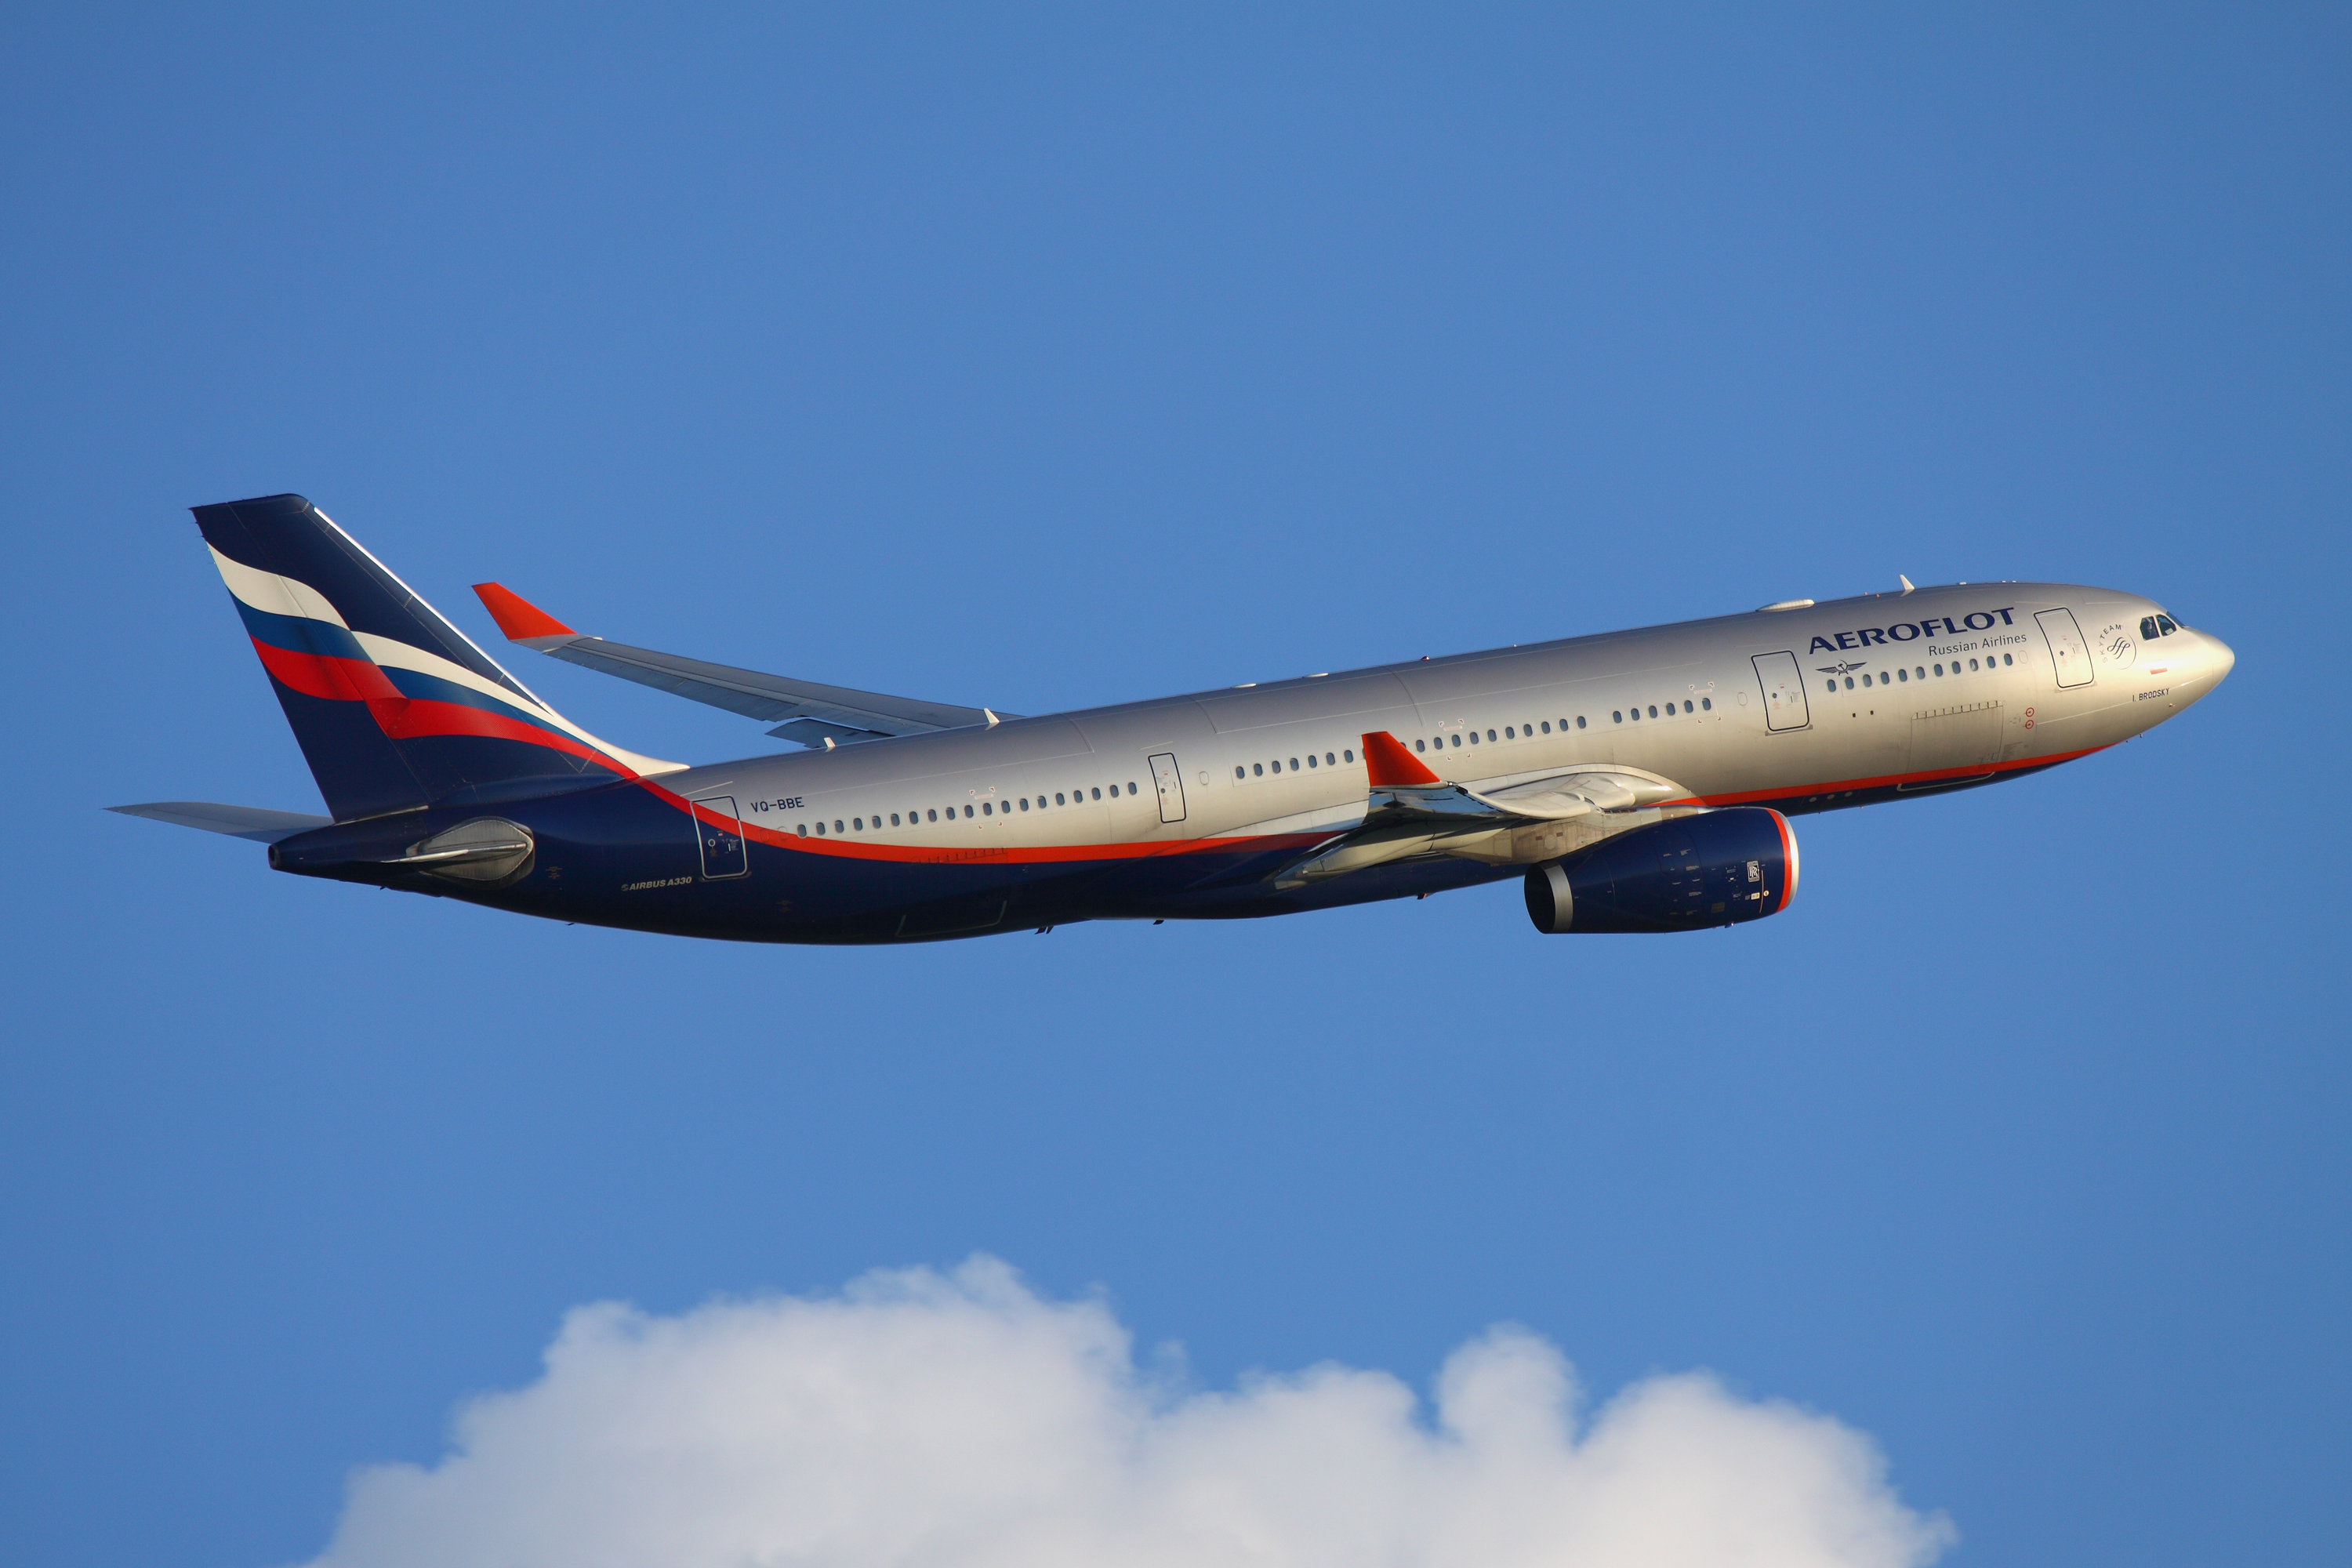 https://upload.wikimedia.org/wikipedia/commons/9/9a/Aeroflot_Airbus_A330_Kustov.jpg